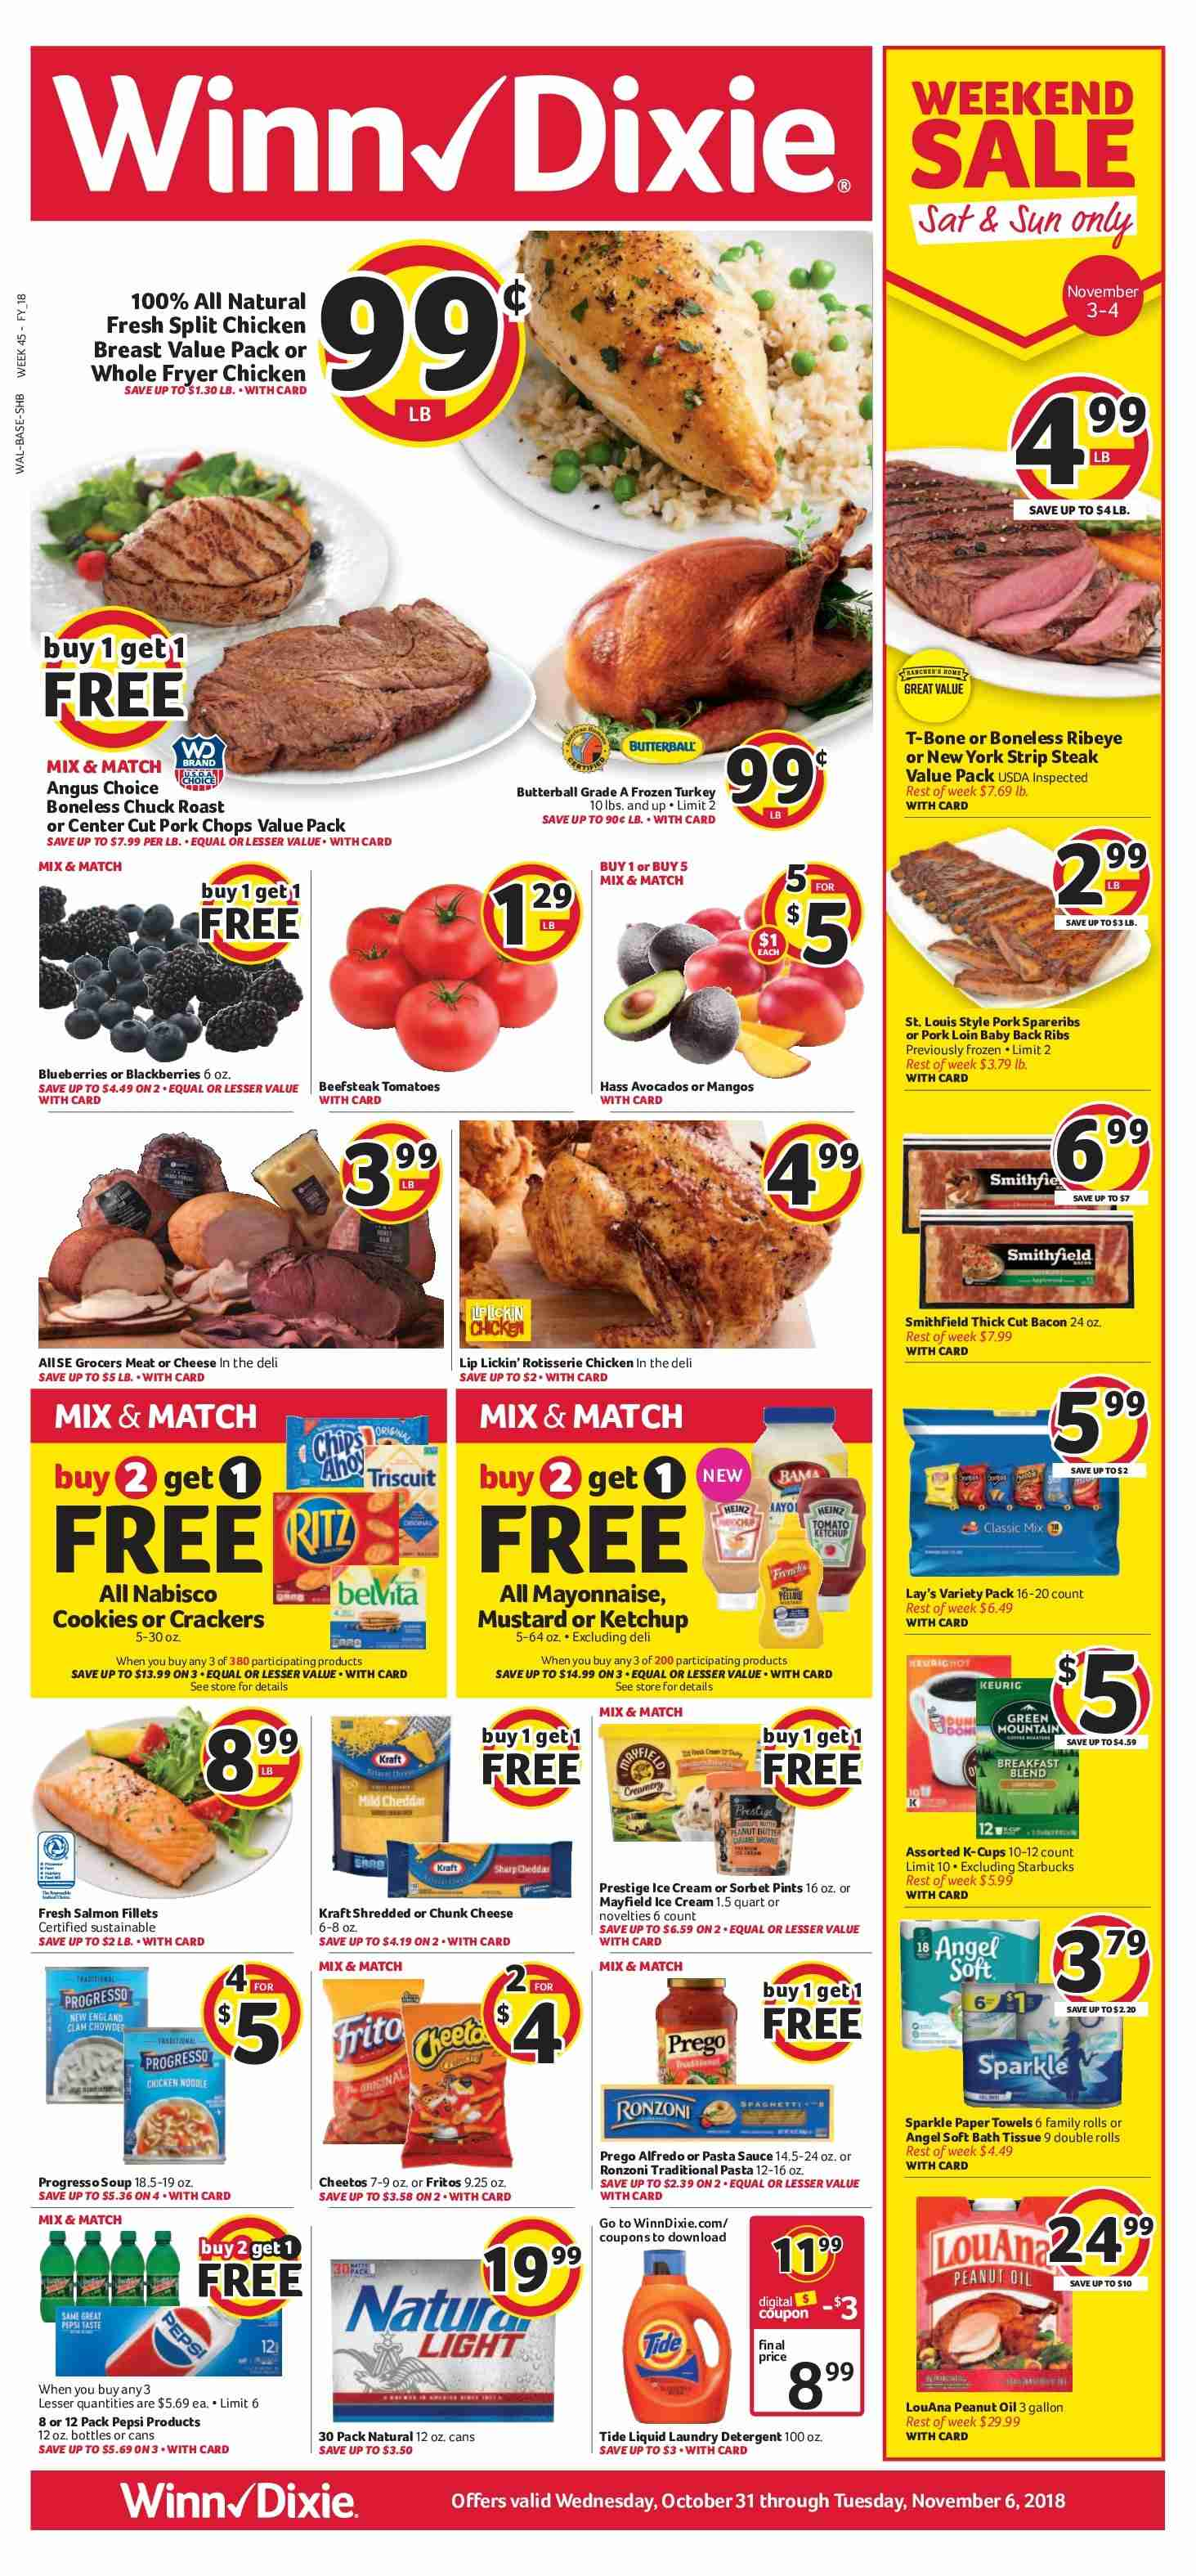 Winn Dixie Flyer - 10.31.2018 - 11.06.2018 - Sales products - alfredo sauce, angel, baby back pork ribs, bacon, bath, bath tissue, blackberries, blueberries, cookies, crackers, detergent, fritos, frozen, fryer, mayonnaise, mustard, salmon, starbucks, tide, tomatoes, towel, ice cream, ketchup, pork chops, pork loin, pork meat, cheetos, chicken, paper towel, pasta sauce, peanut oil, peanuts, pepsi. Page 1.